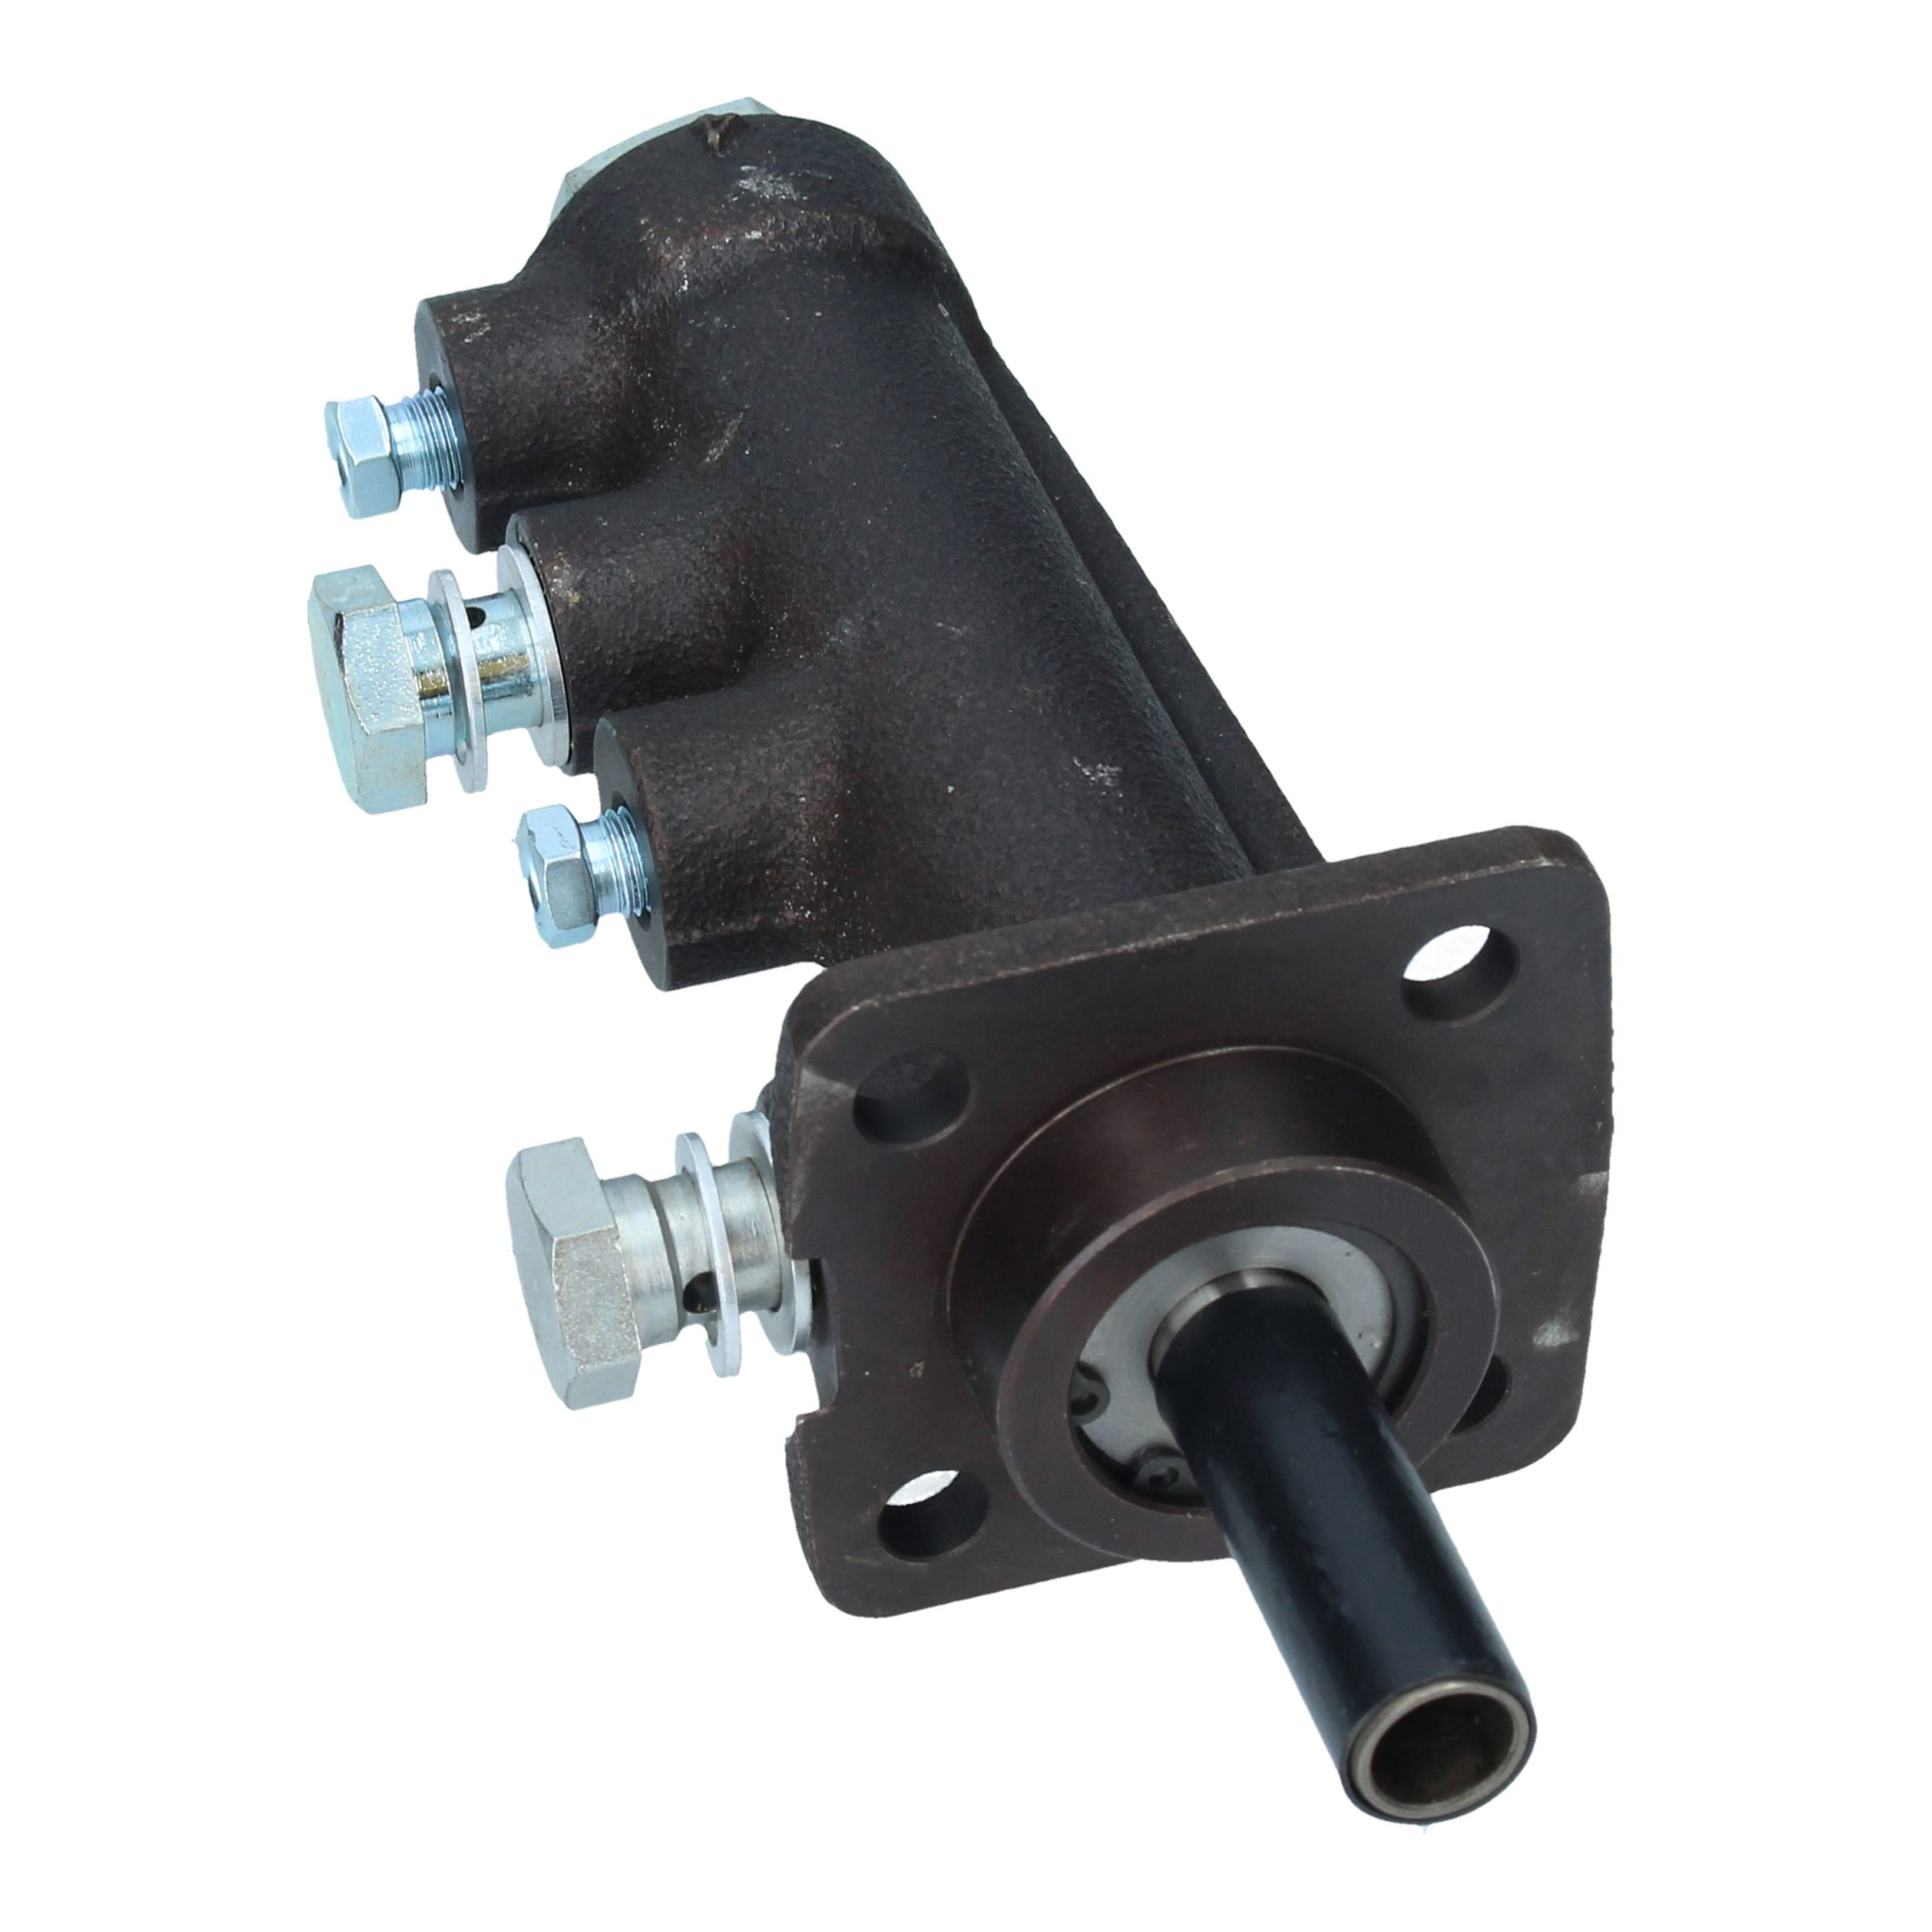 Ferrari Brake Master Cylinder 330 GT 2+2 (For Single Bonaldi Servo) (95691016)